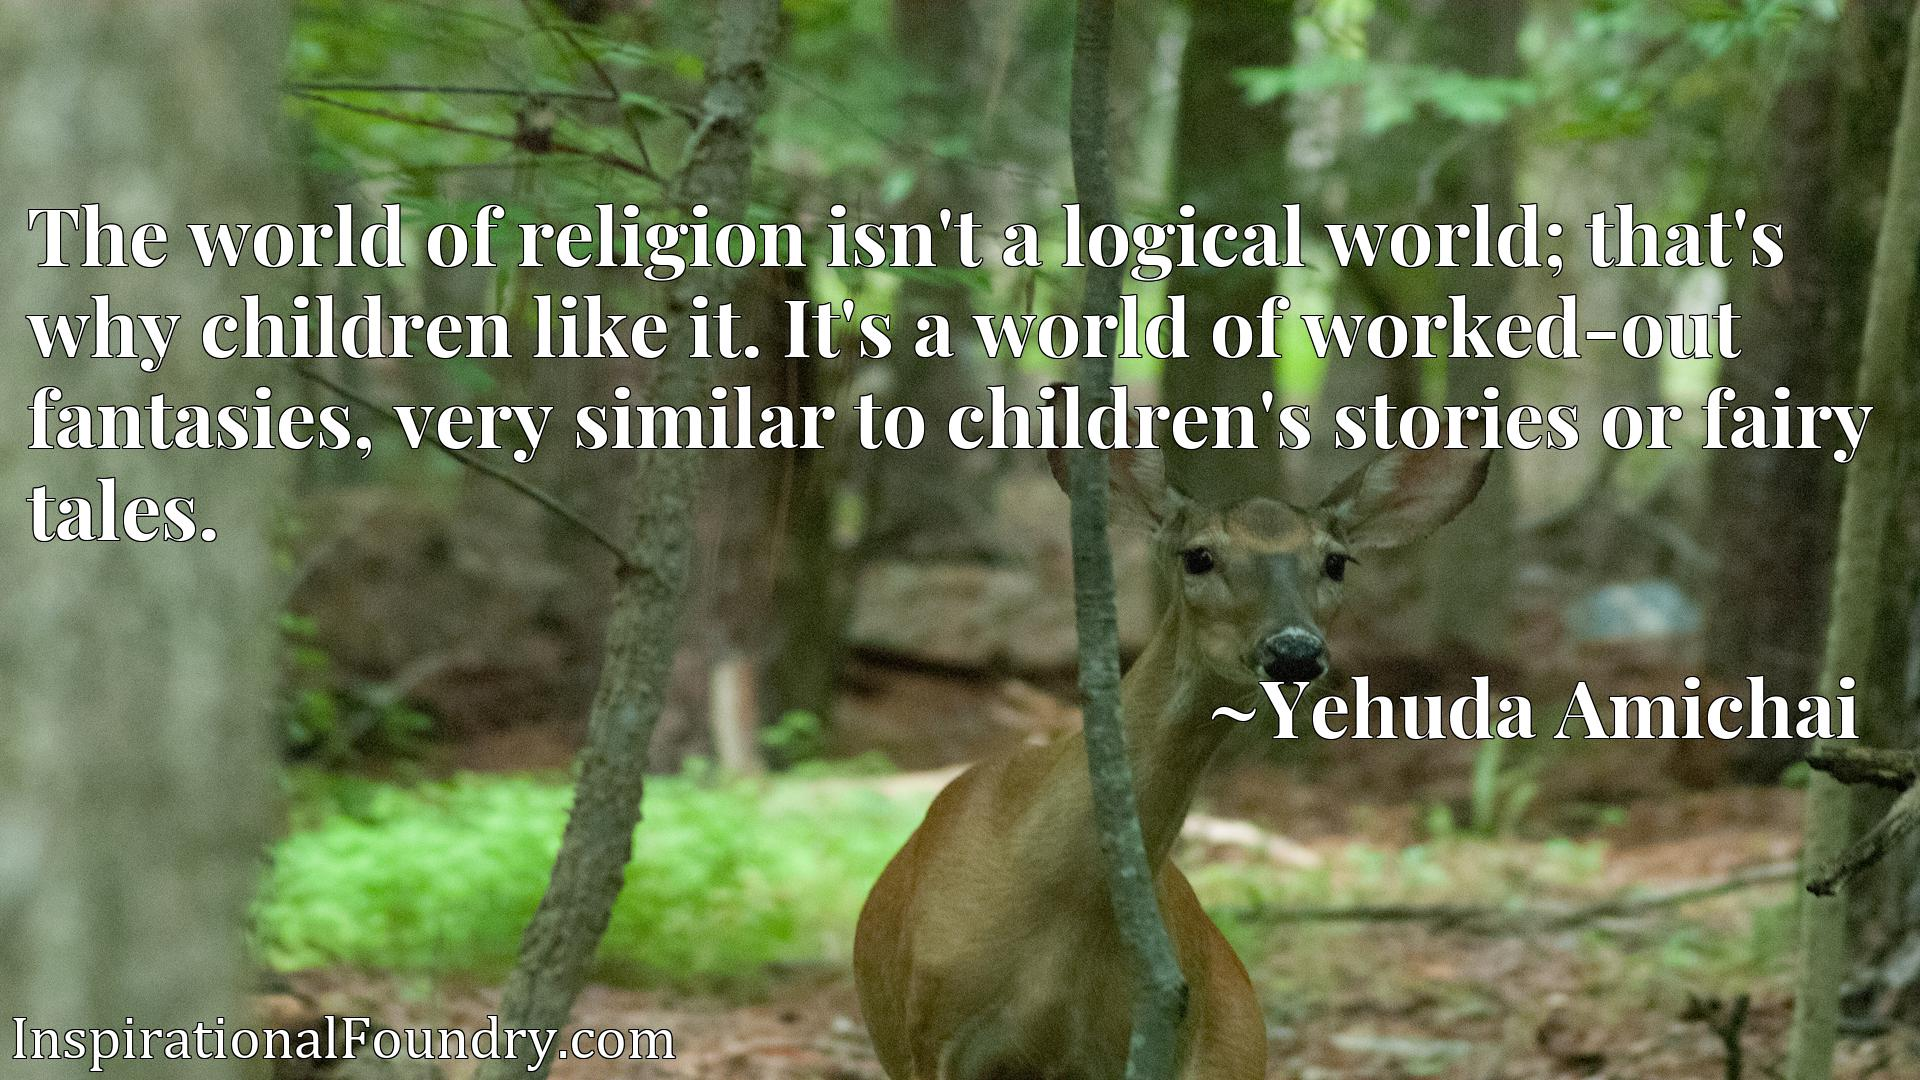 The world of religion isn't a logical world; that's why children like it. It's a world of worked-out fantasies, very similar to children's stories or fairy tales.